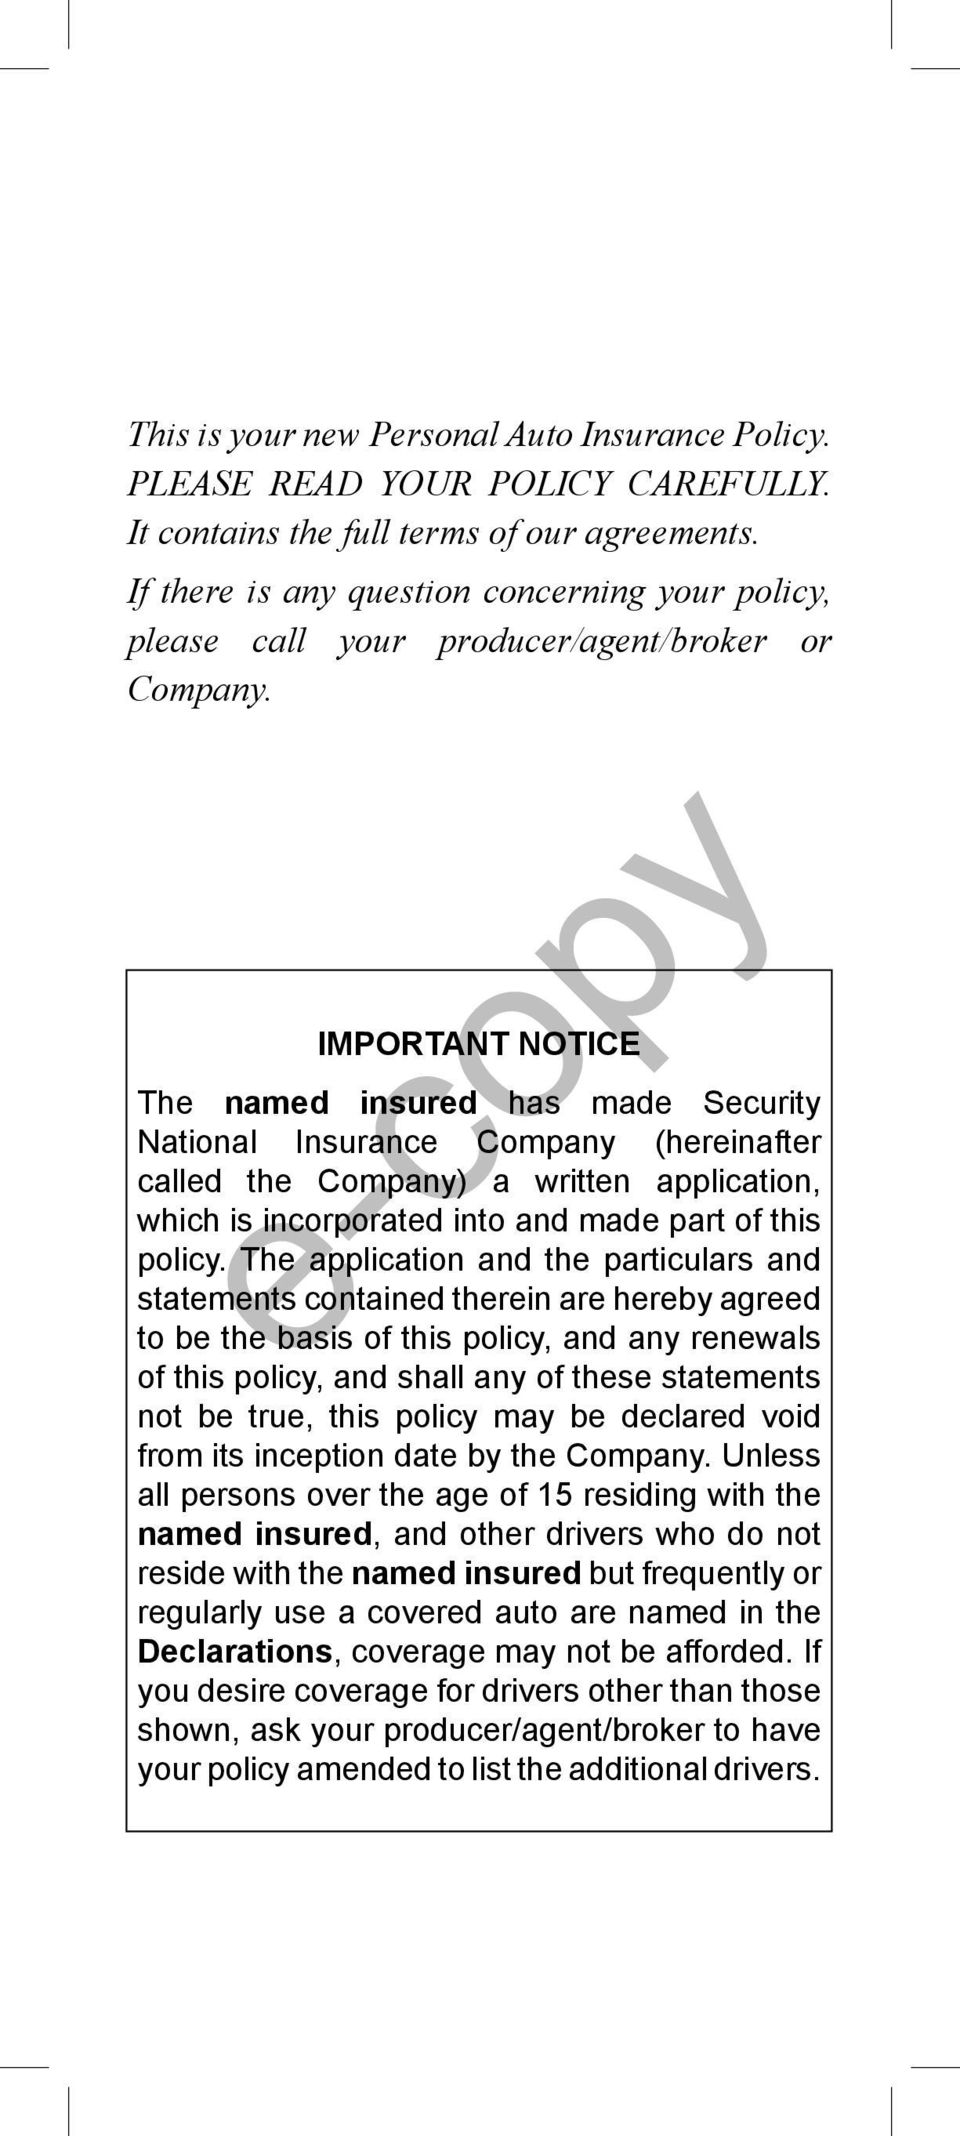 IMPORTANT NOTICE The named insured has made Security National Insurance Company (hereinafter called the Company) a written application, which is incorporated into and made part of this policy.